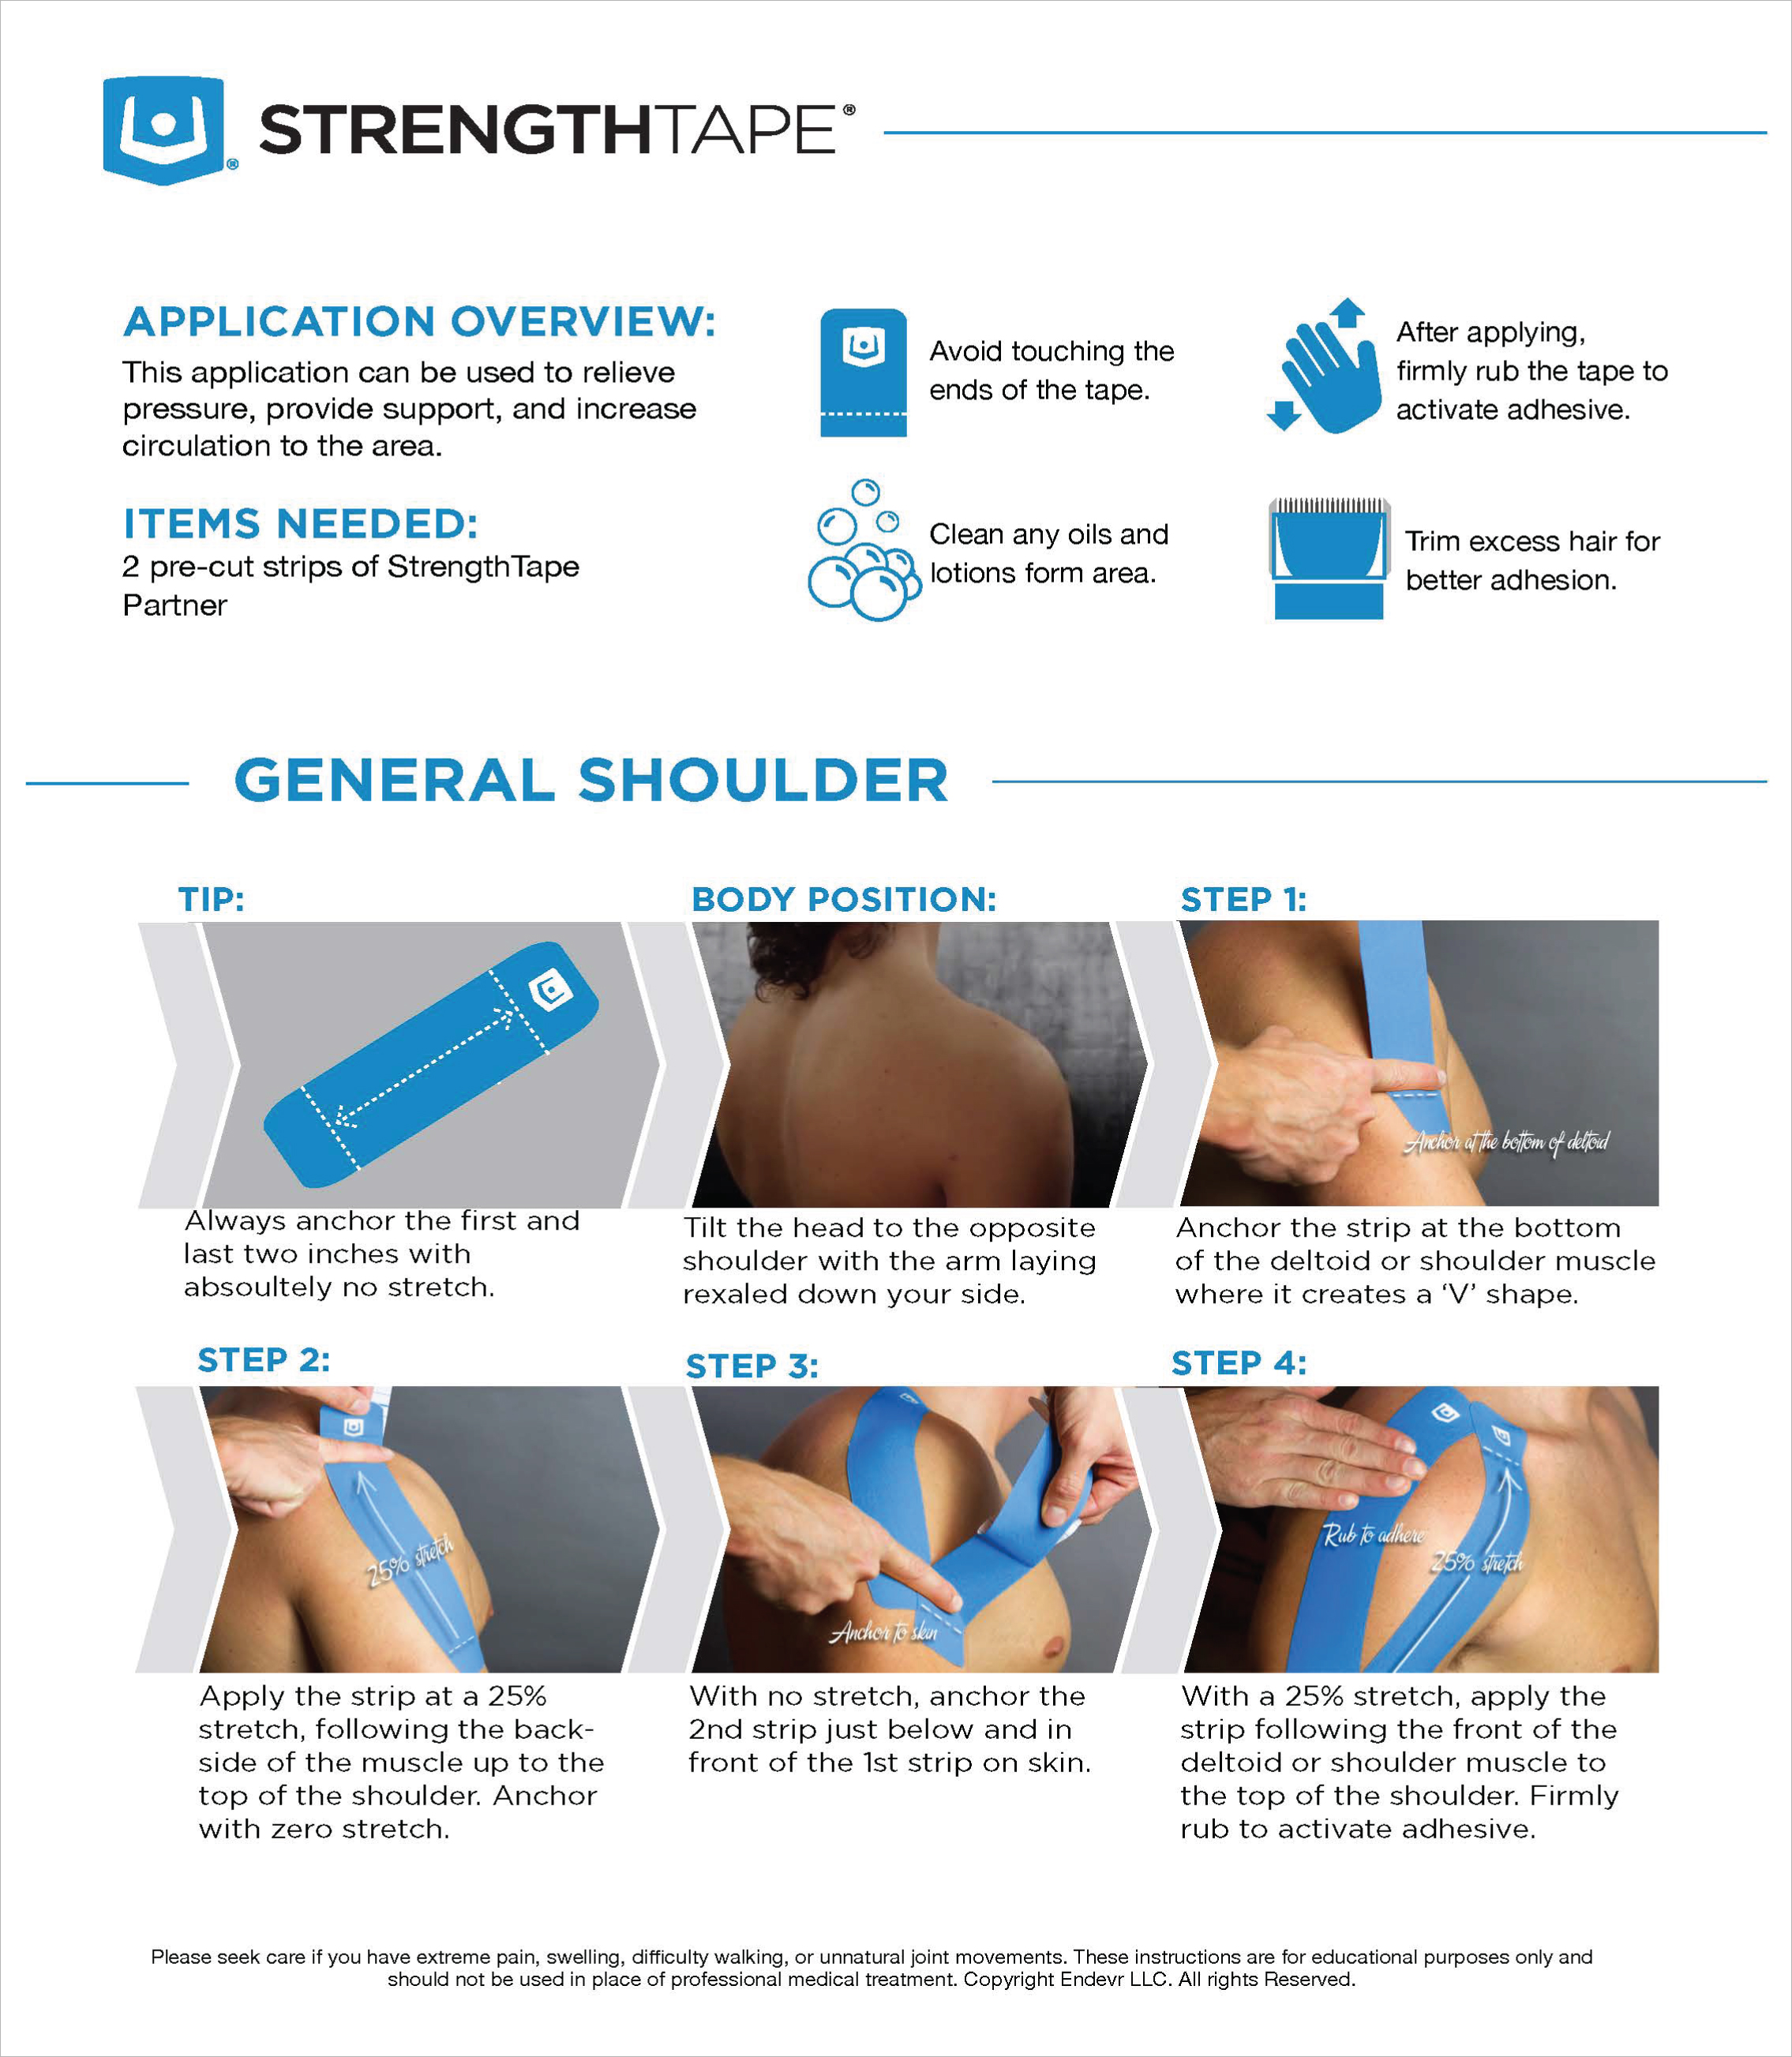 StrengthTape General Shoulder Taping Instructions